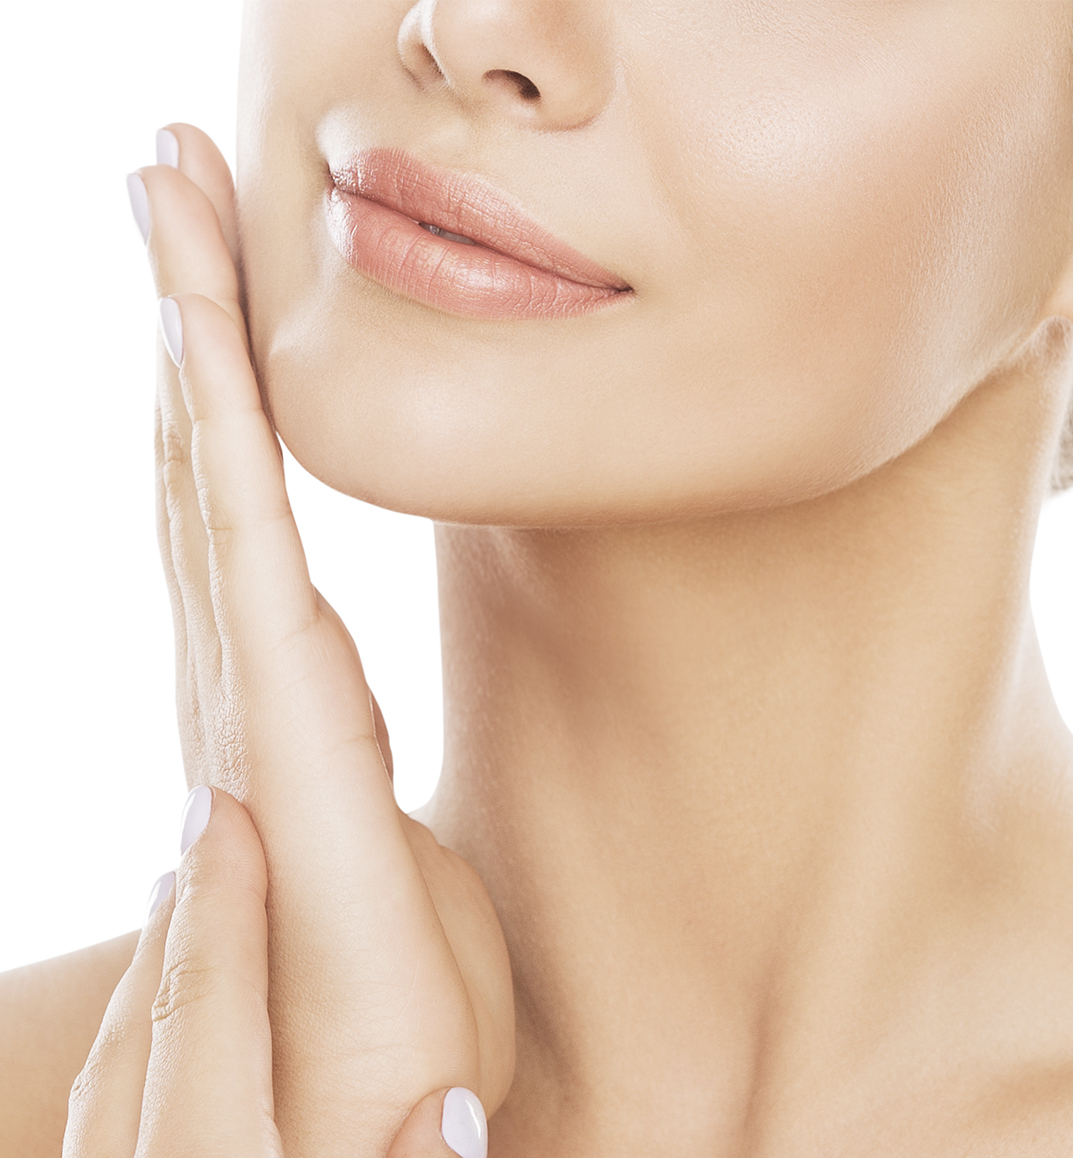 Cosmetic Chin Surgery